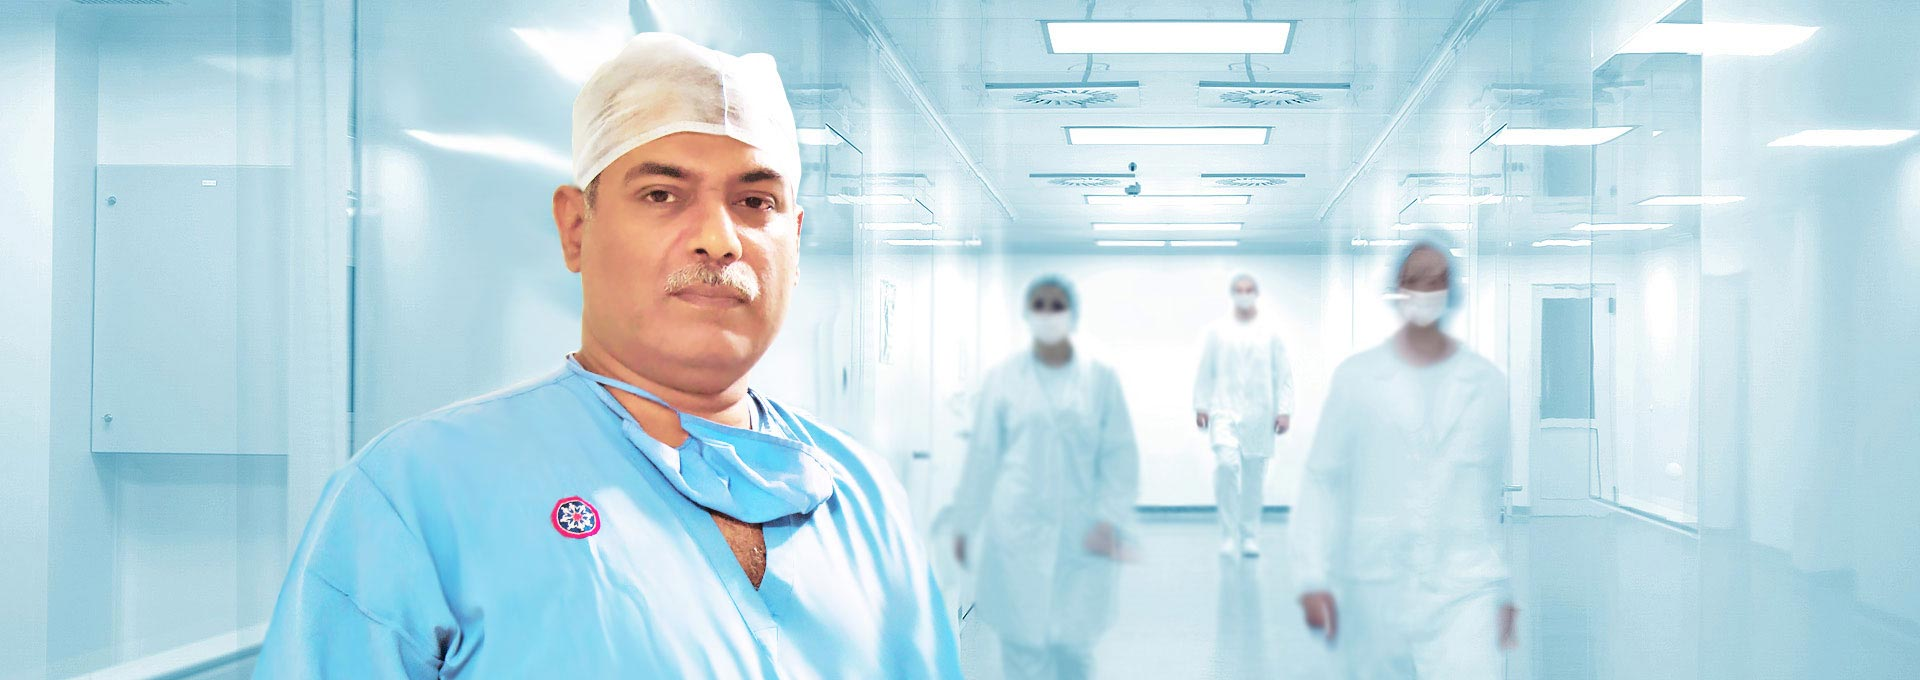 Dr. Bantwal - Neurosurgeon